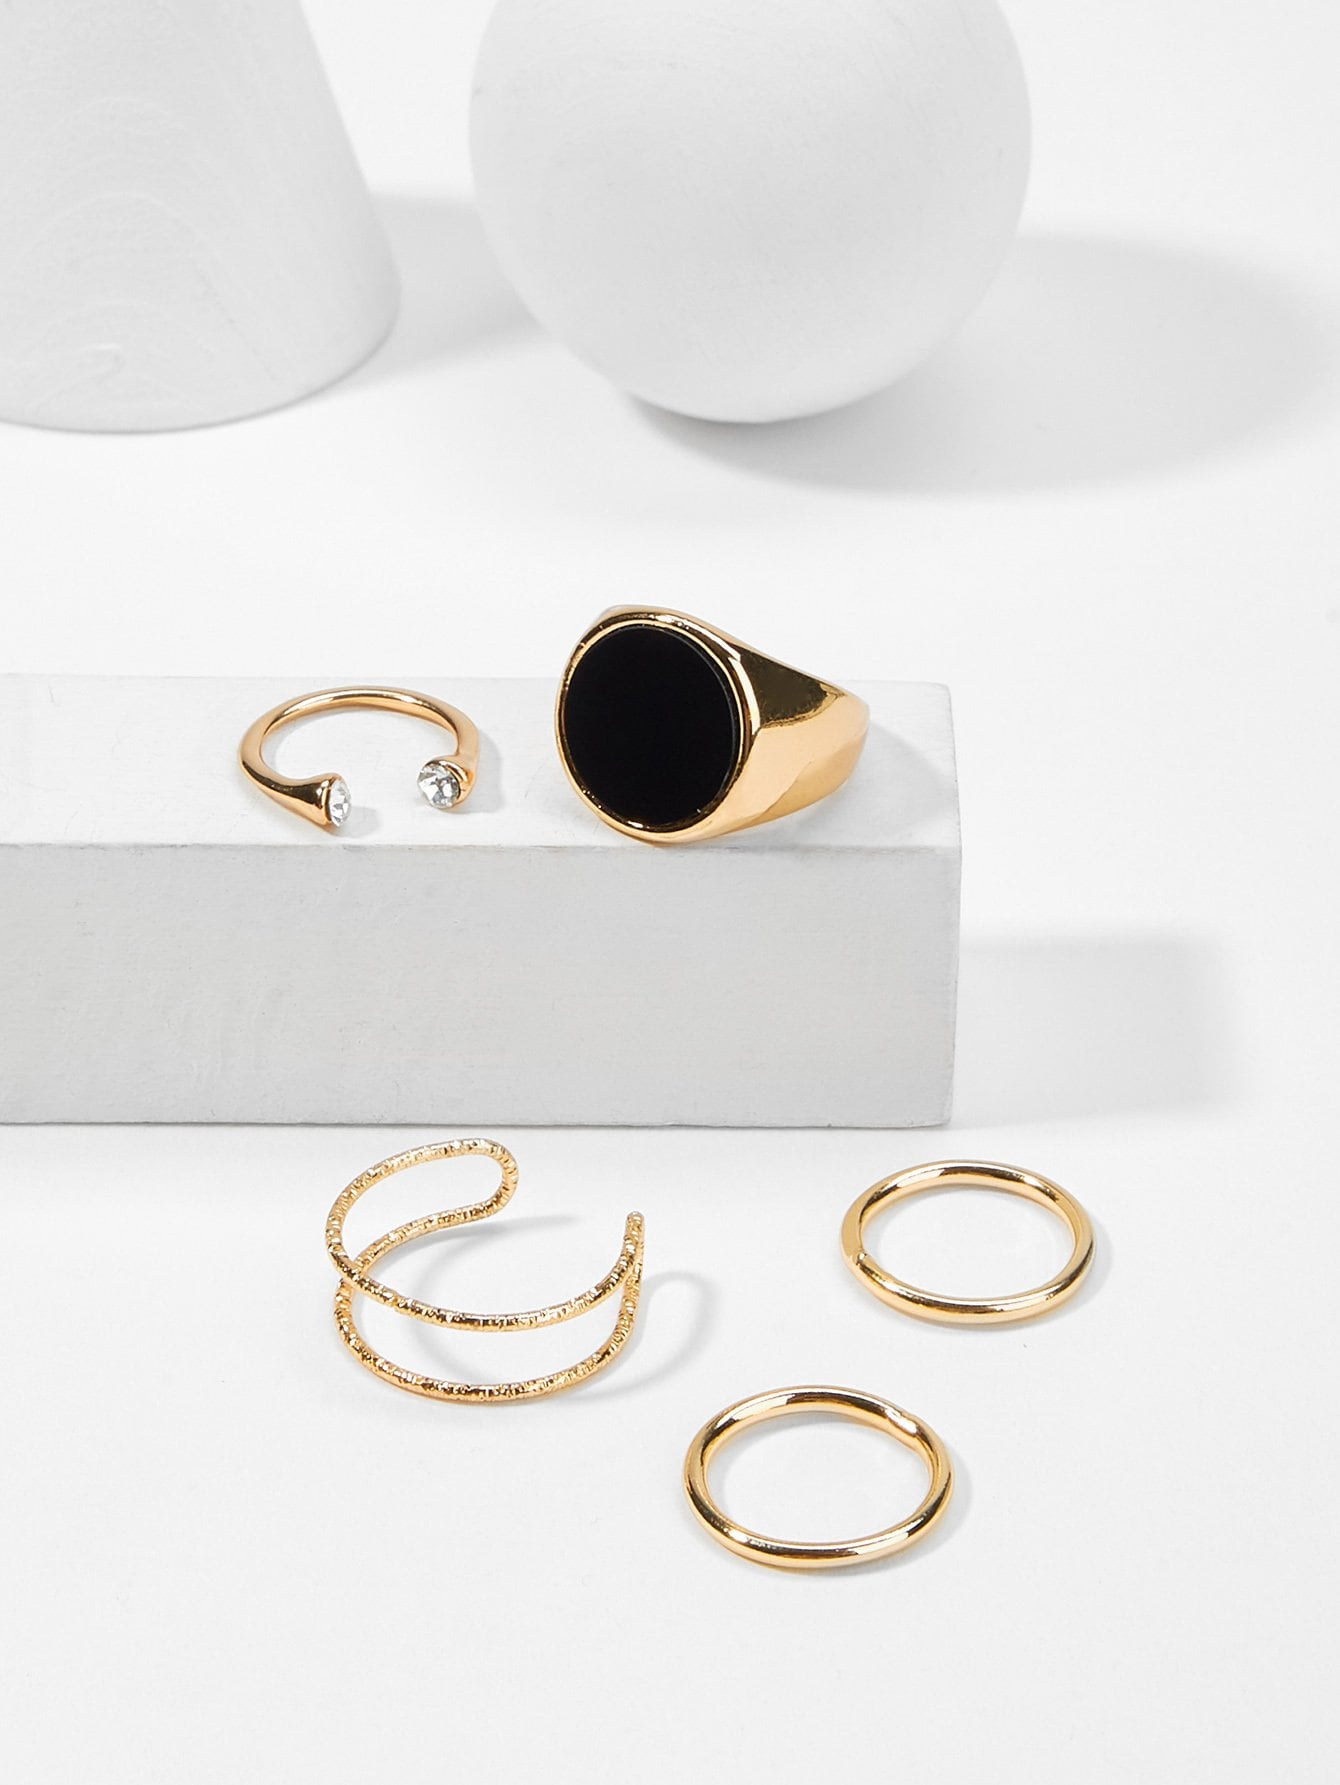 Golden And Grey Round Design 5pcs Ring Set